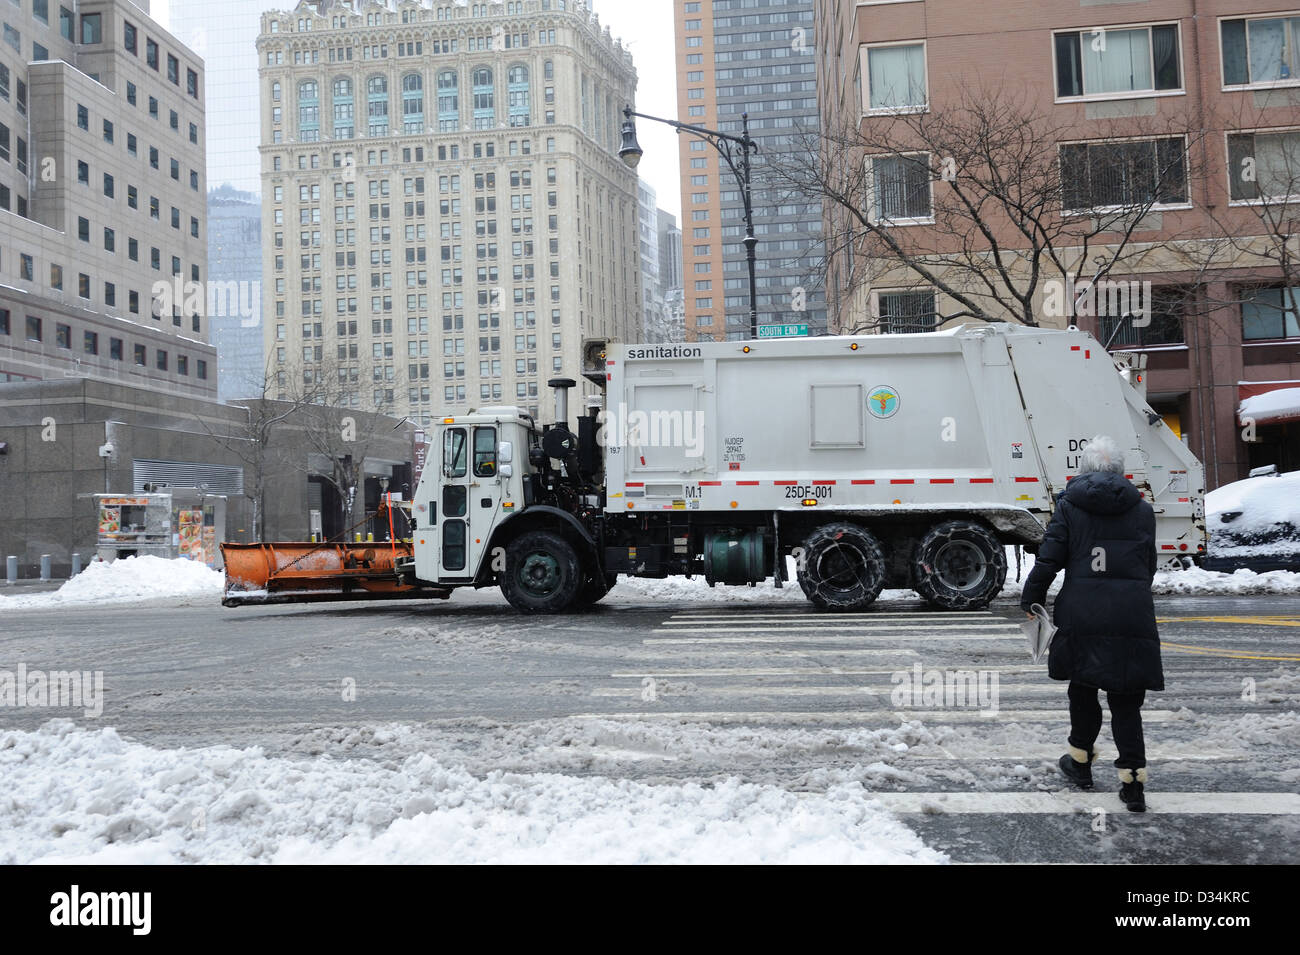 A snowplow on South End Avenue in Battery Park City, a neighborhood in Manhattan, New York City. - Stock Image